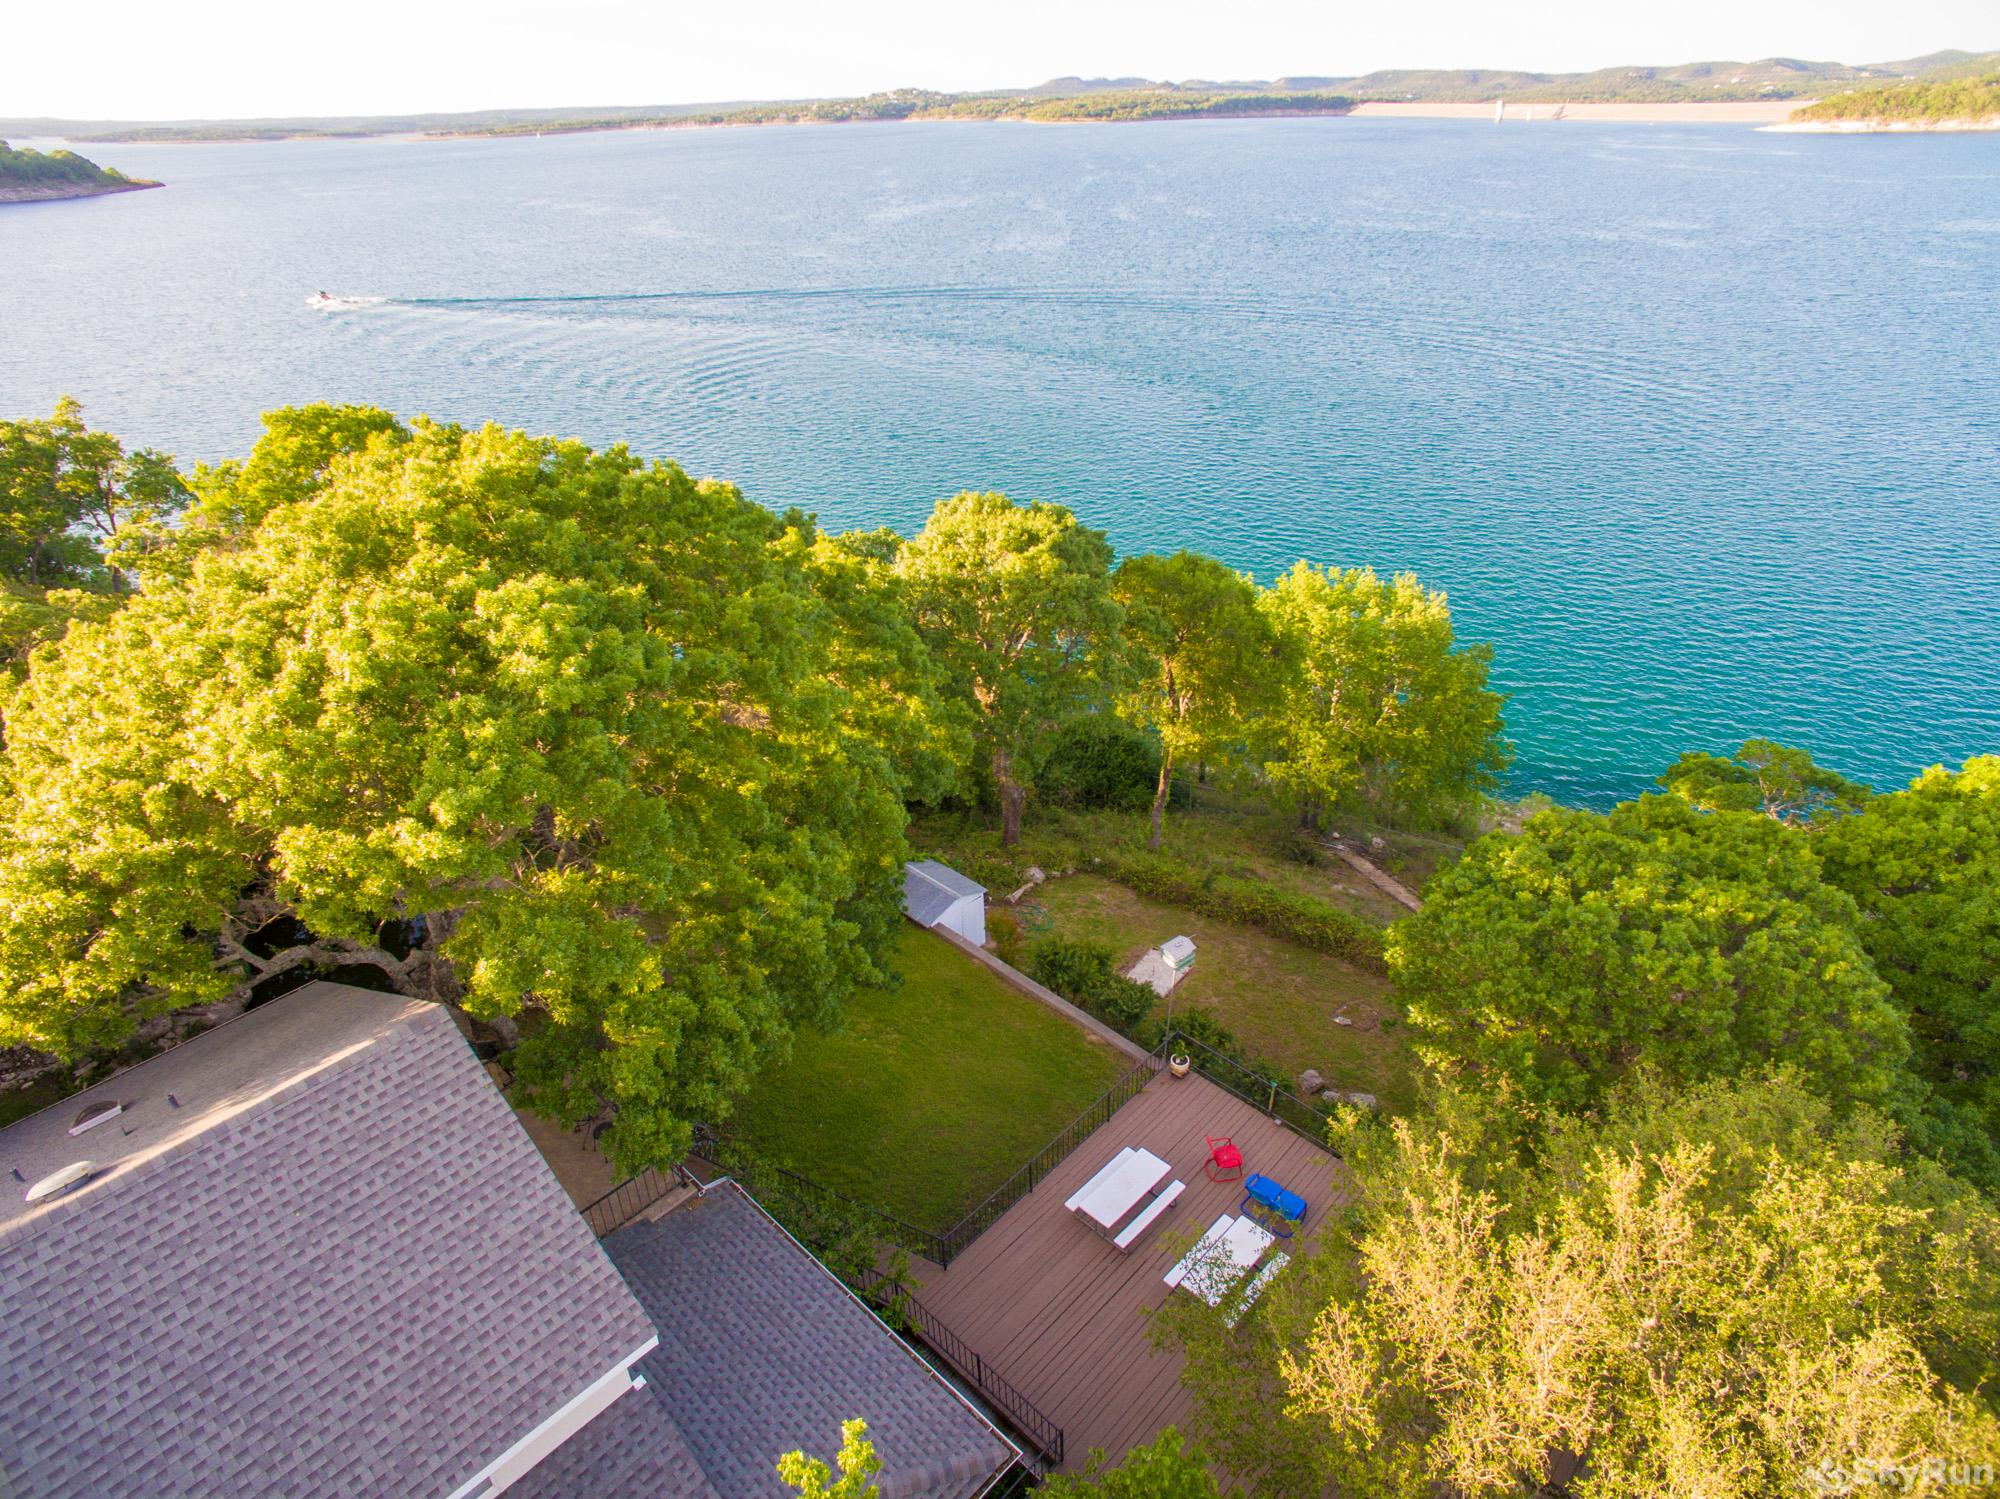 BUCKHAVEN RIDGE Backyard of Home with Canyon Lake Directly Below